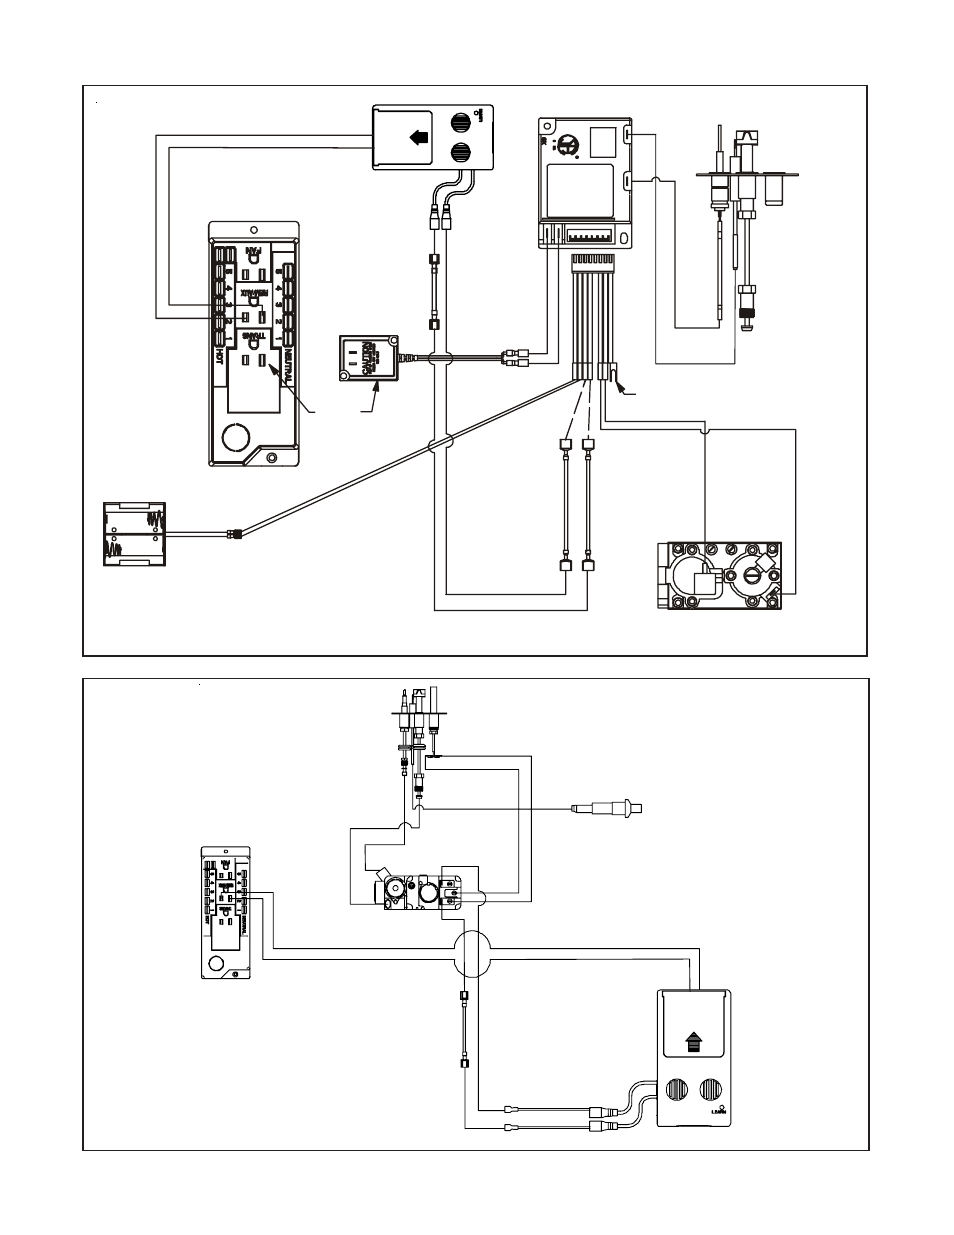 remote control wiring diagrams